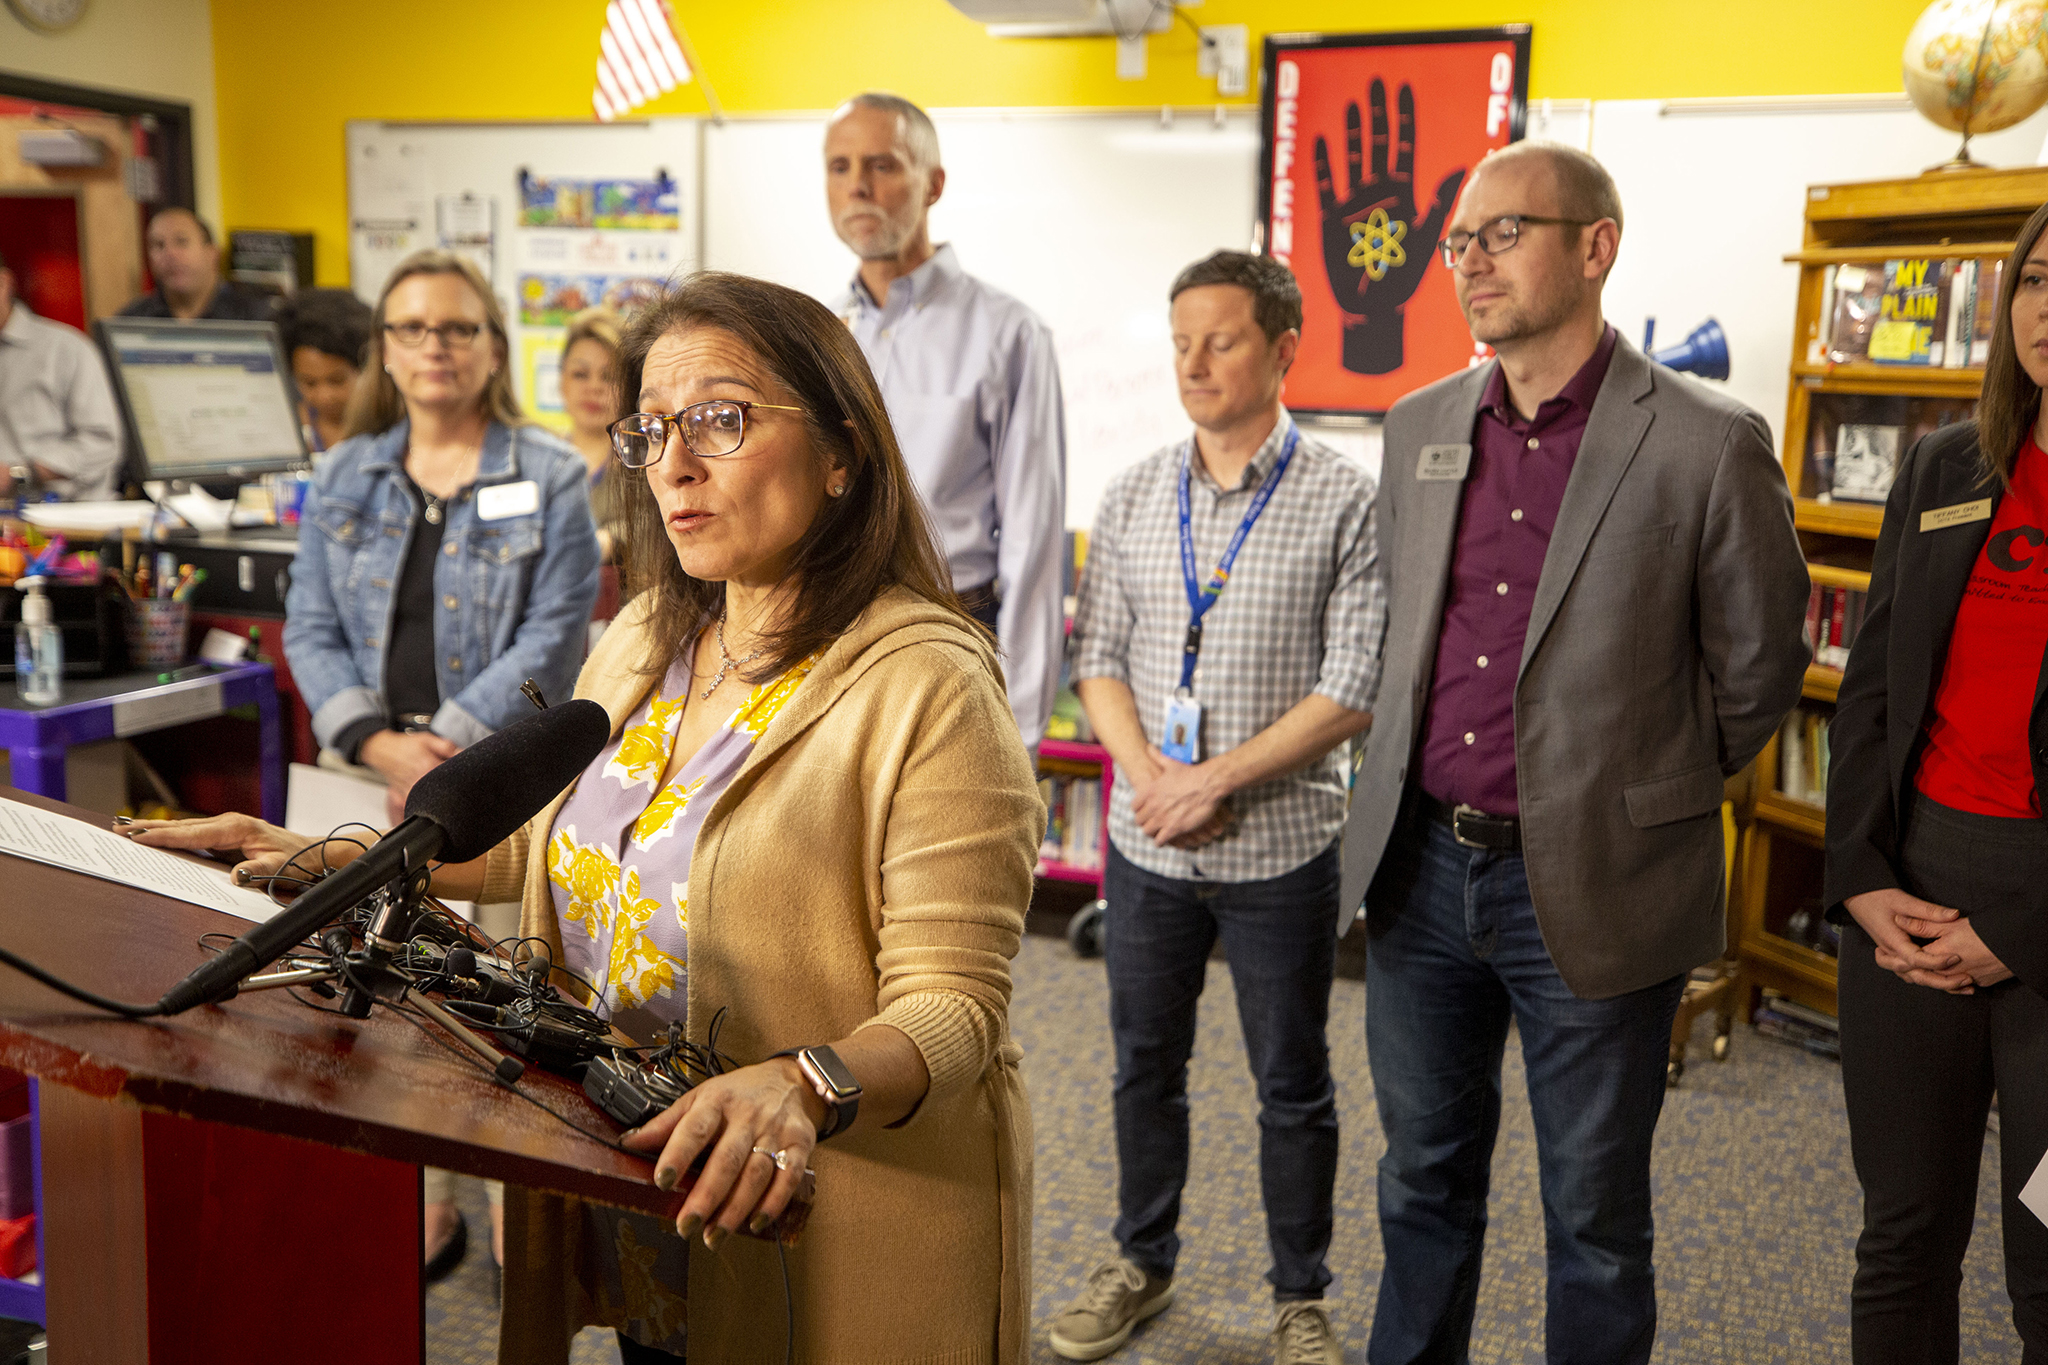 Denver Public Schools Superintendent Susana Cordova announces an extended spring break to protect students from COVID-19 on March 12, 2020.